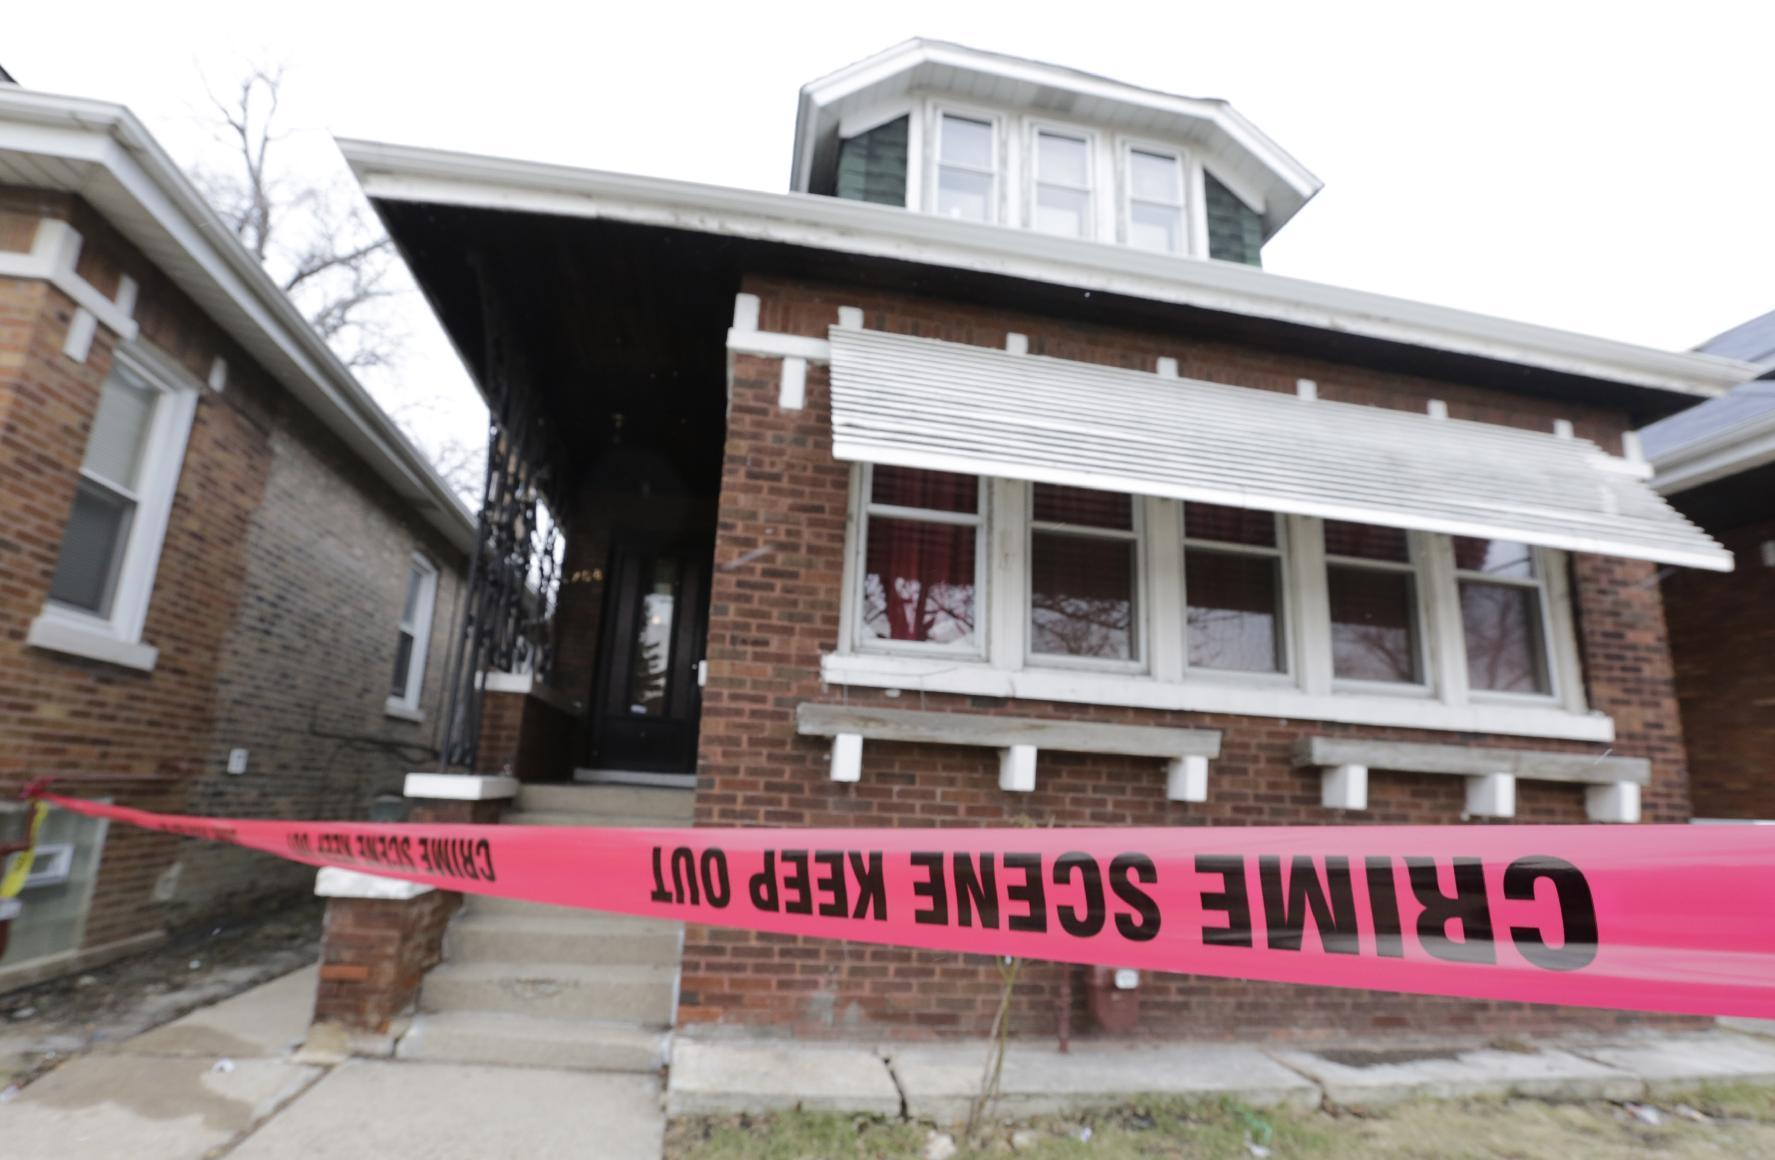 5 victims found in Chicago home stabbed, 1 was shot